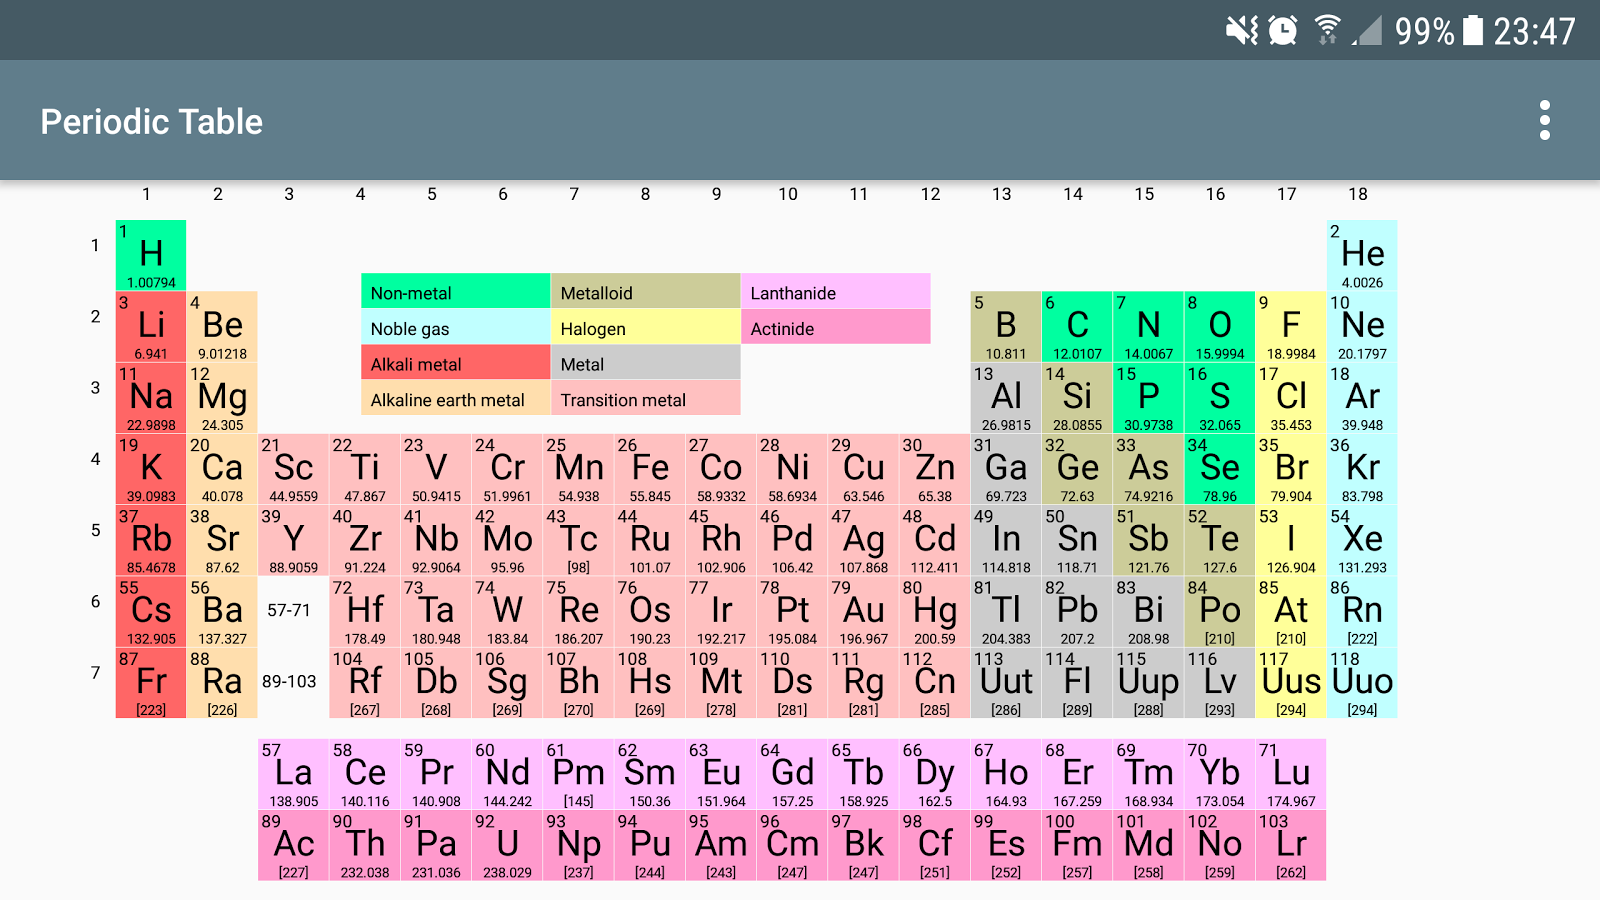 Periodic table of elements study guide images periodic table images periodic table of elements study guide images periodic table images periodic table of elements study guide gamestrikefo Image collections